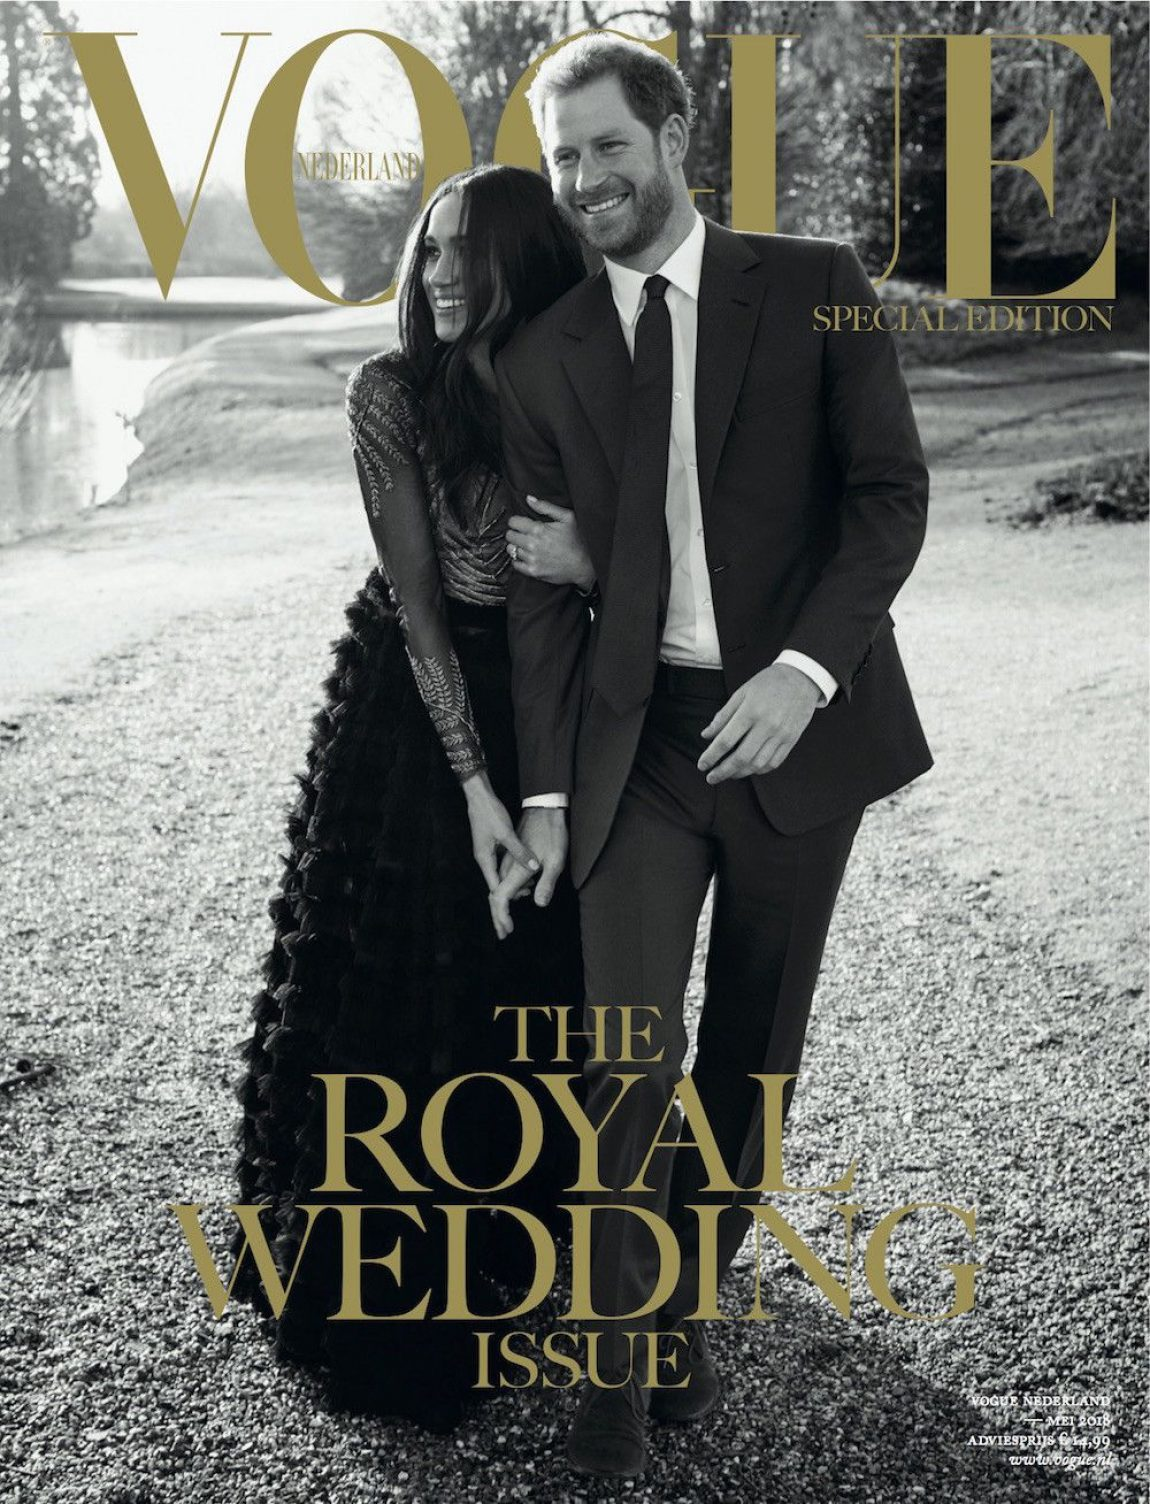 Vogue-Royal-Wedding-issue-1531749476